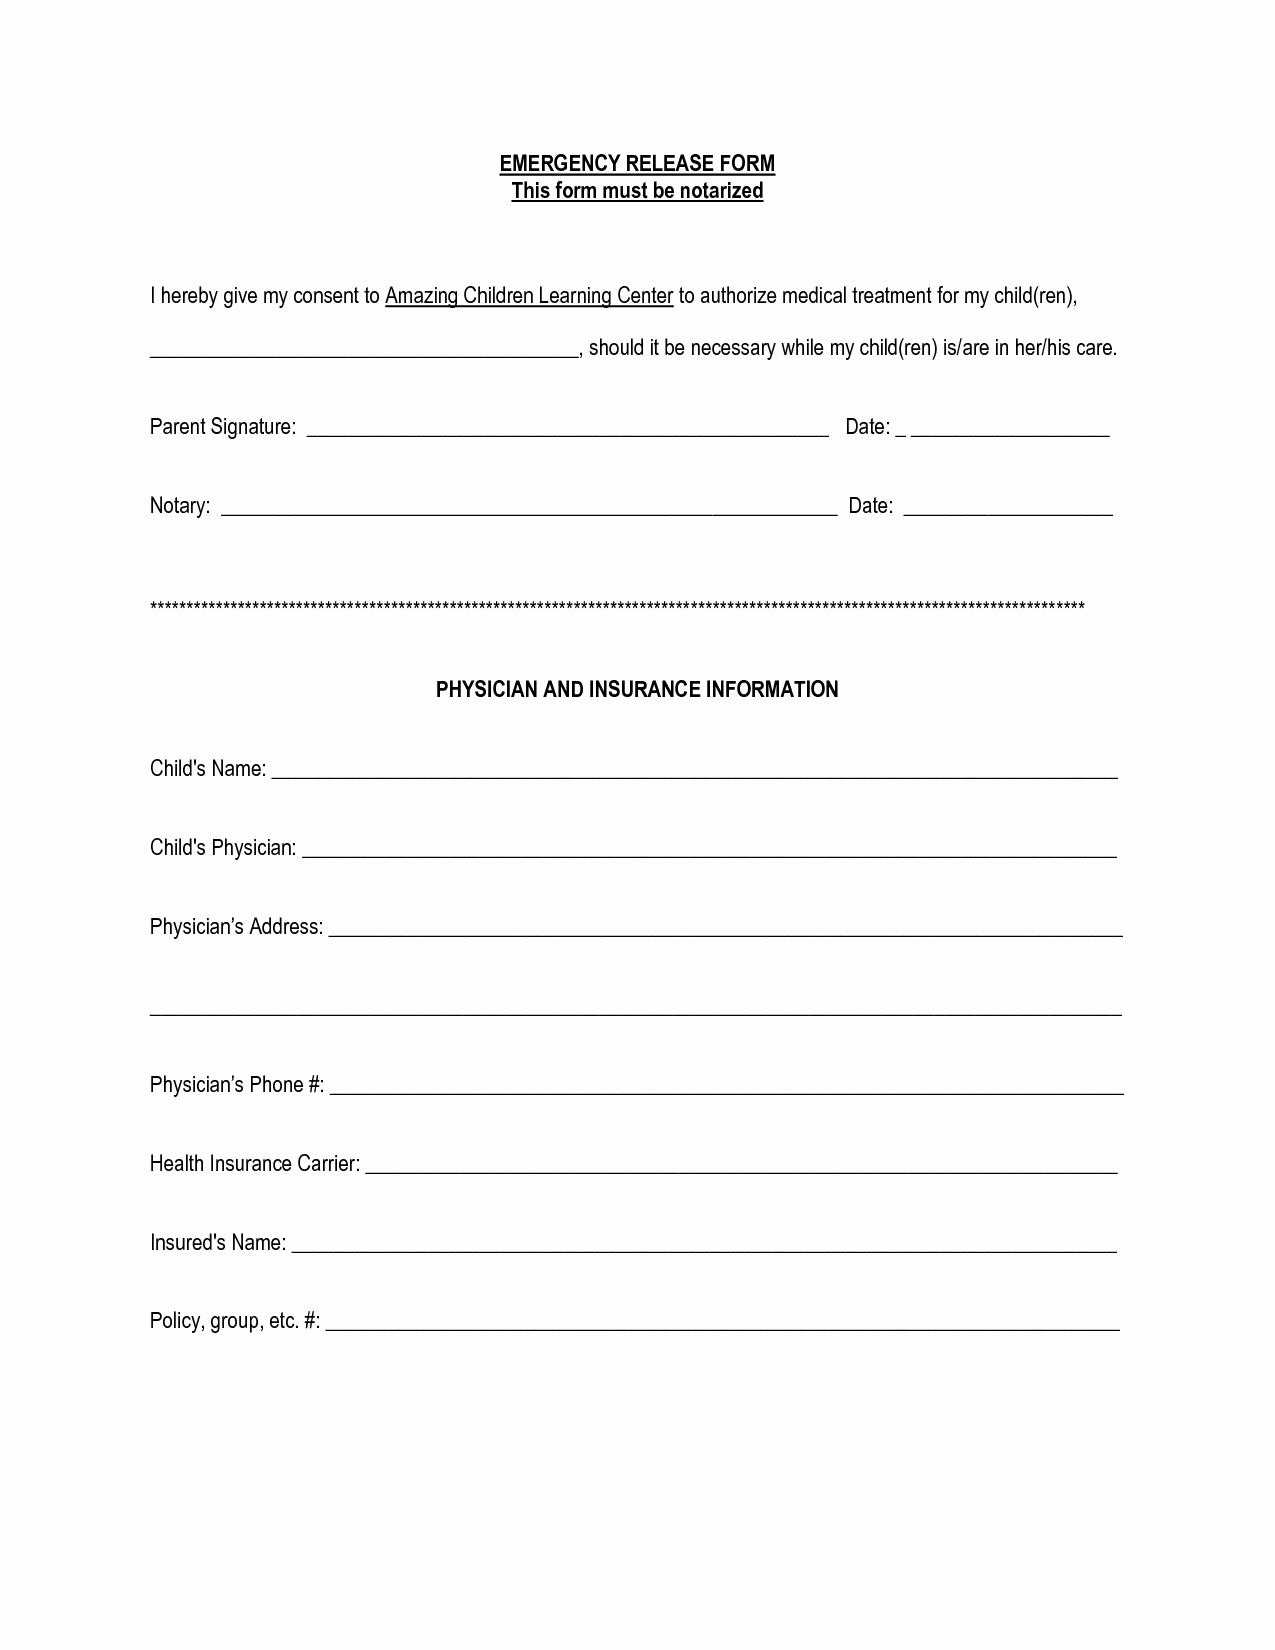 Emergency Contact form for Children Beautiful Best S Of Contact form Template Contact Information